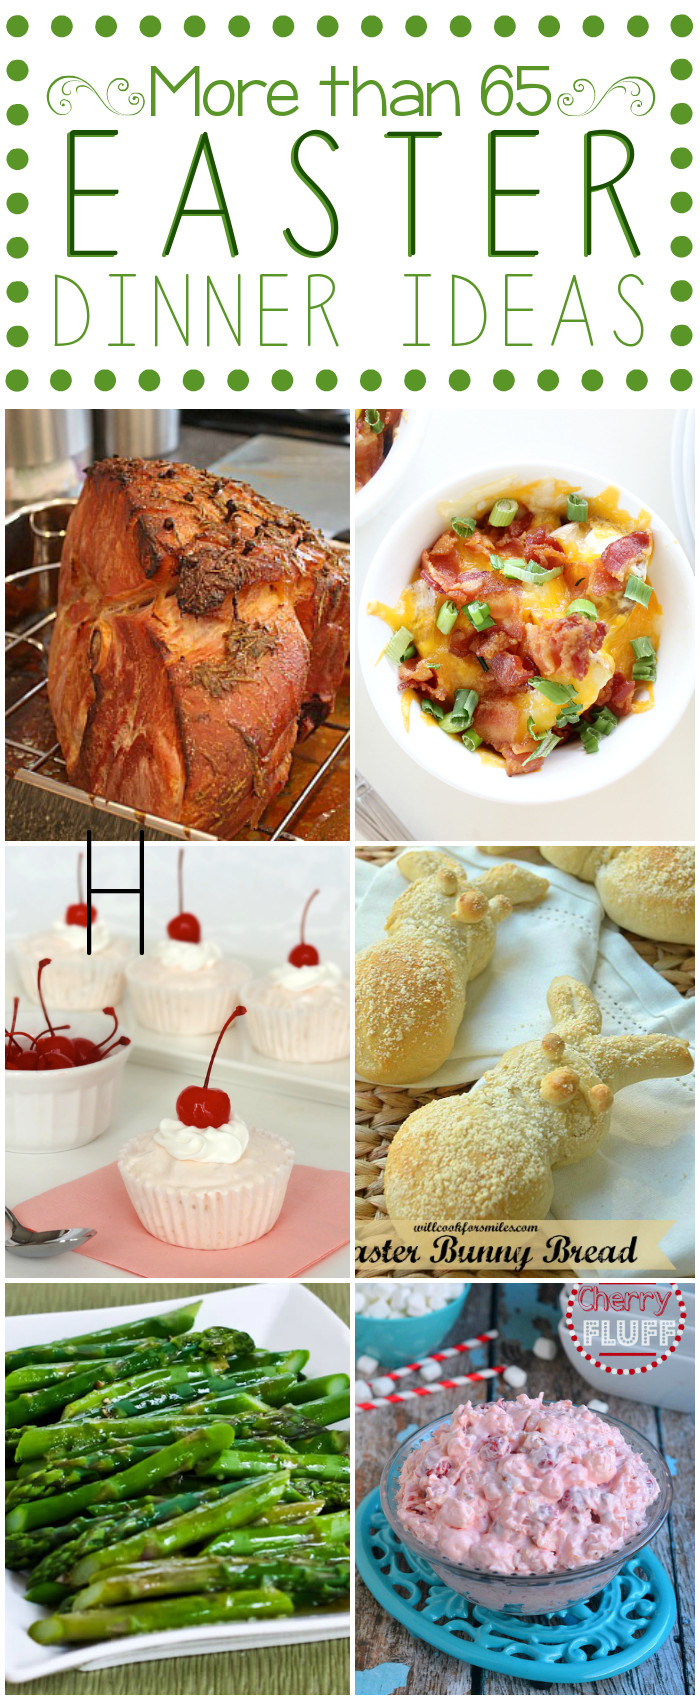 Easter Dinner Suggestions  Easter Dinner Ideas Round Up Mom s Test Kitchen